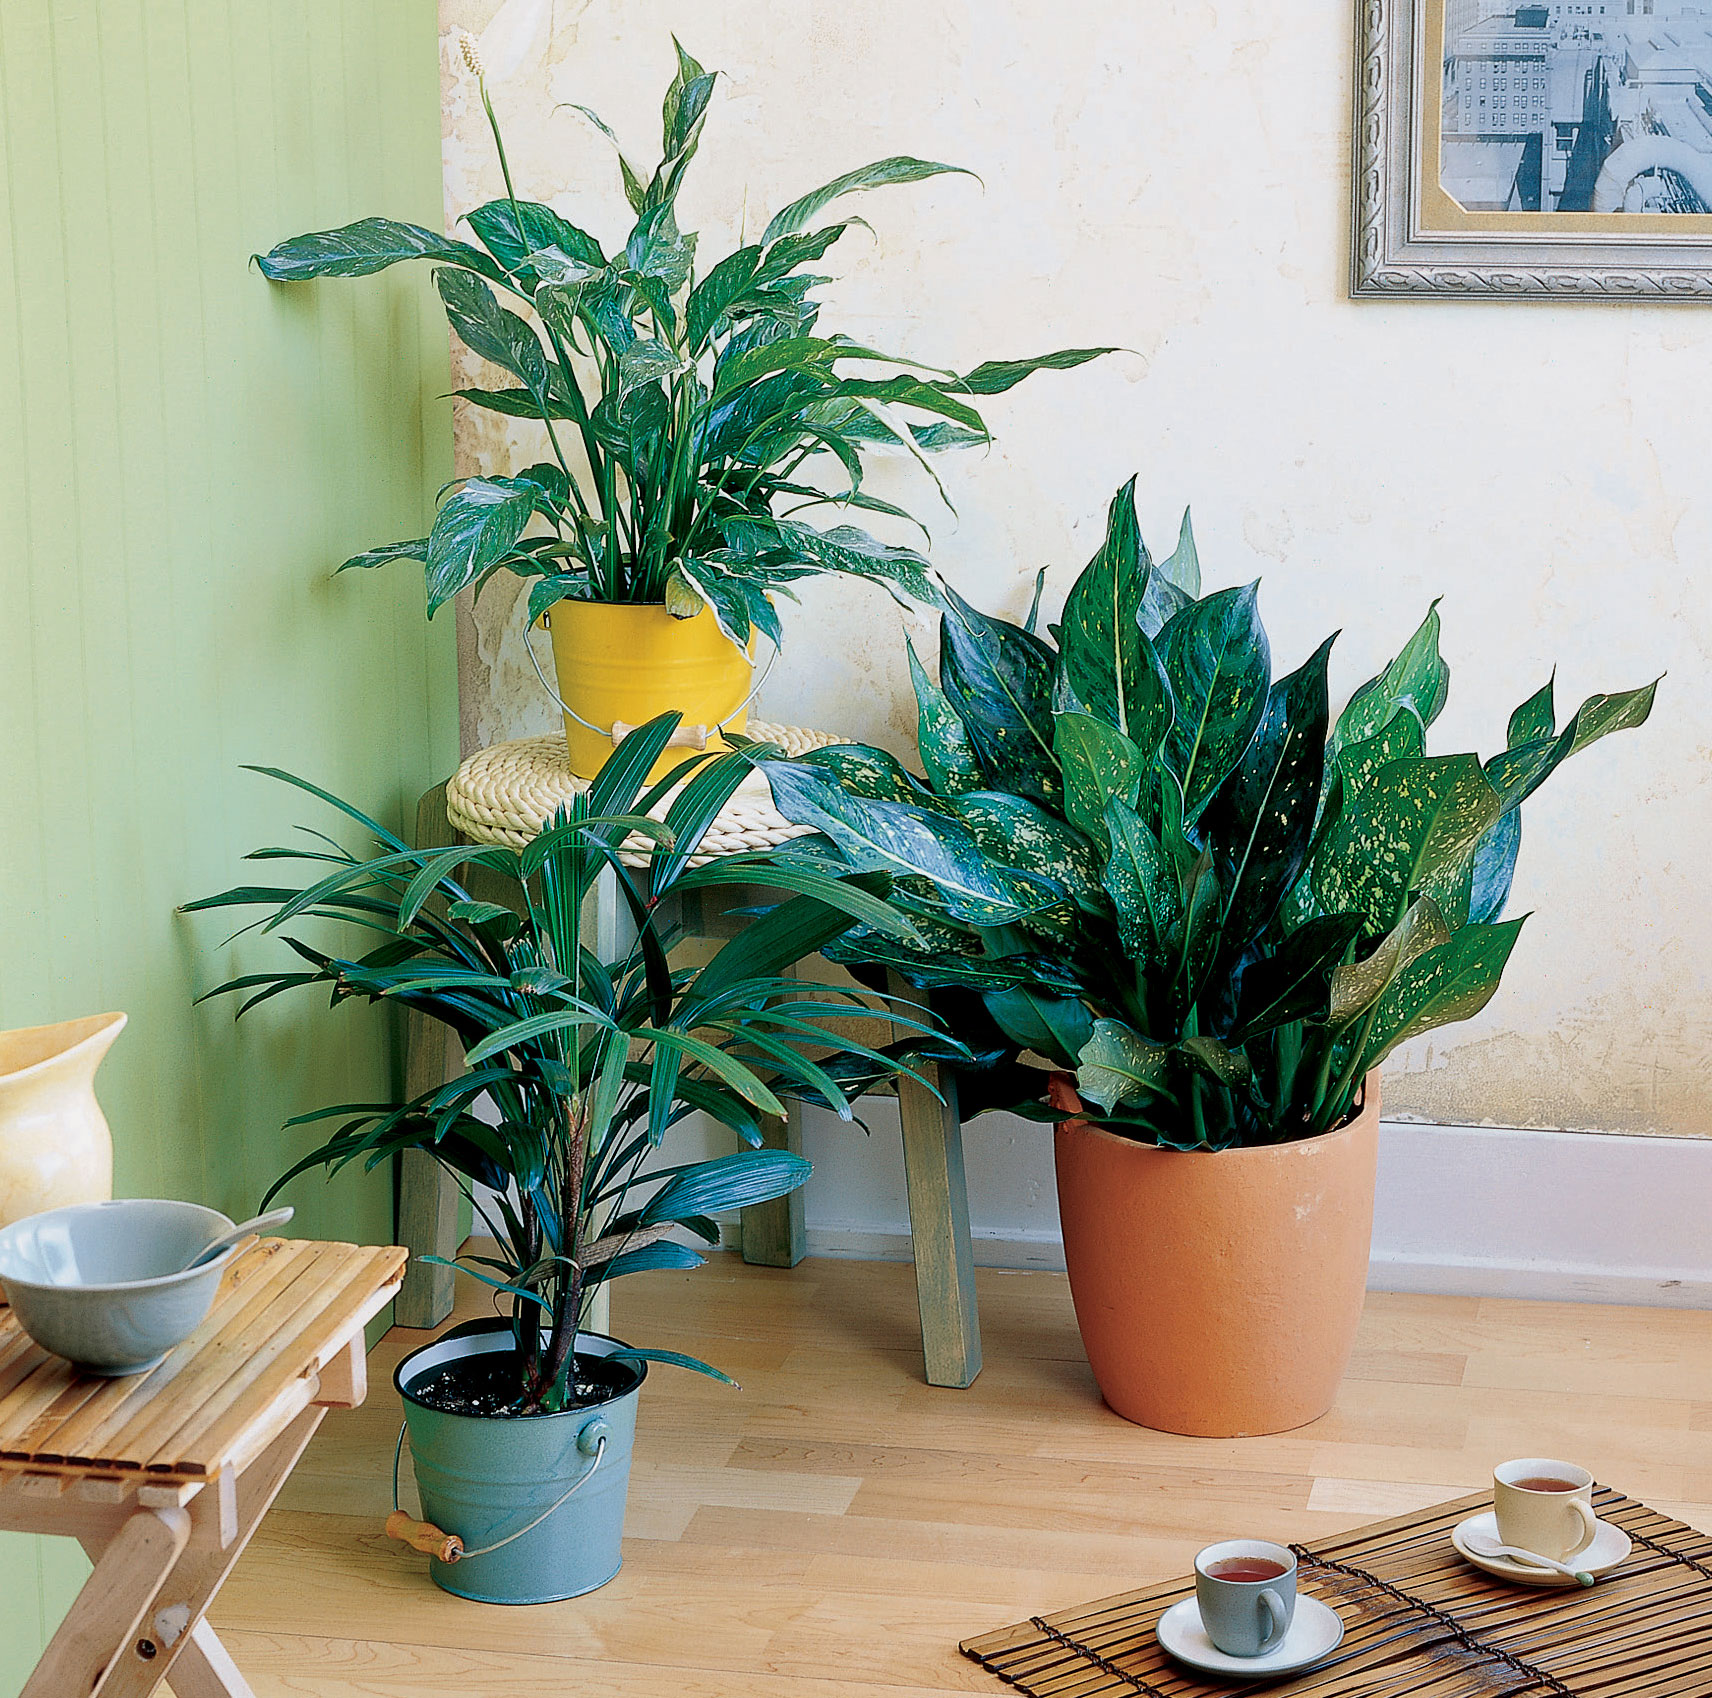 Easy care houseplants sunset magazine sunset magazine for Easy care flowers for garden